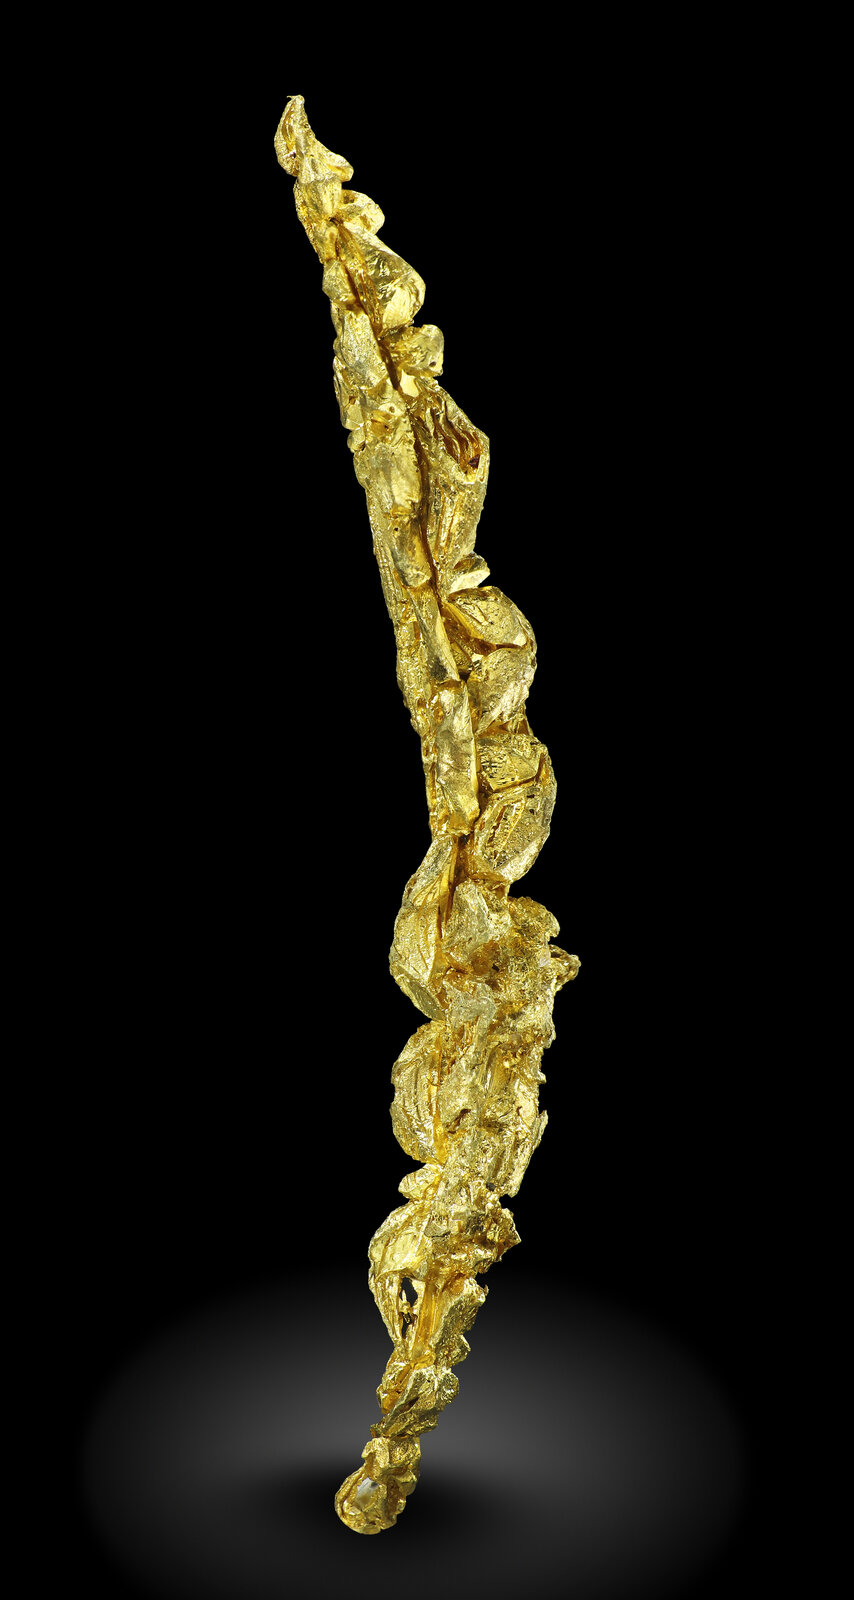 specimens/s_imagesAM8/Gold-MT47AM8_0170_f.jpg